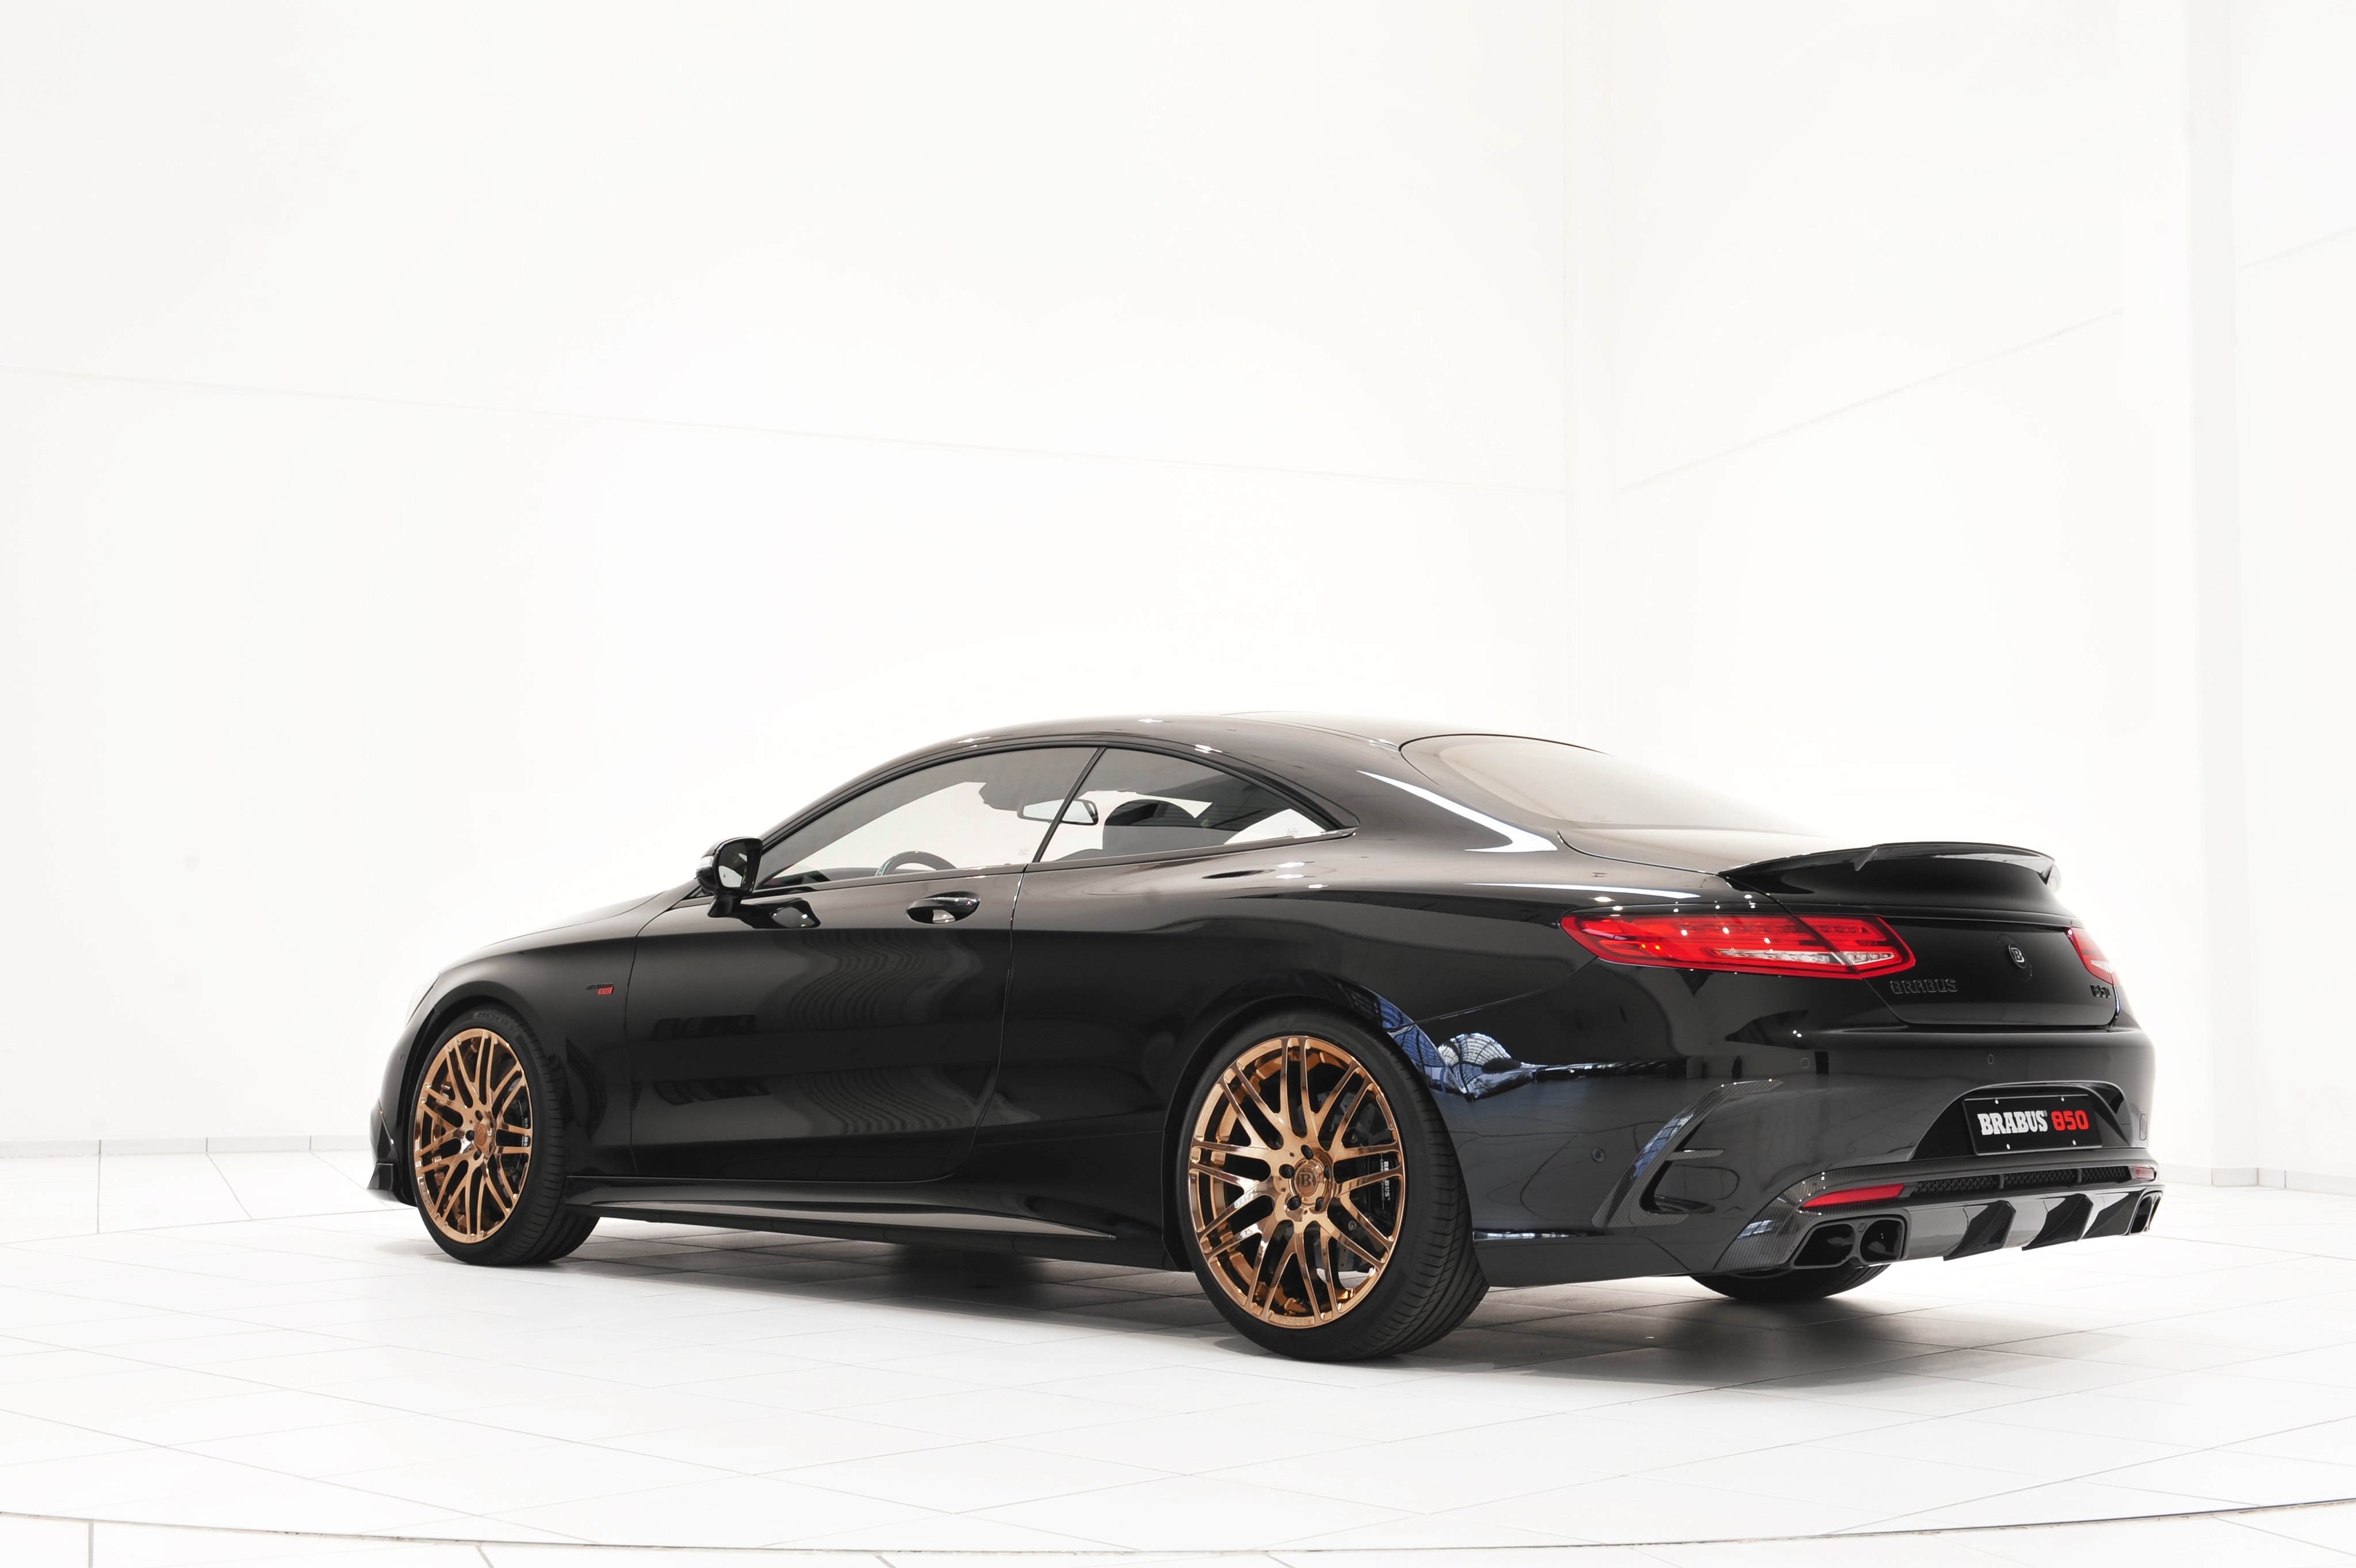 2015 brabus mercedes benz s63 amg coupe c217 tuning for 2015 mercedes benz s63 amg coupe